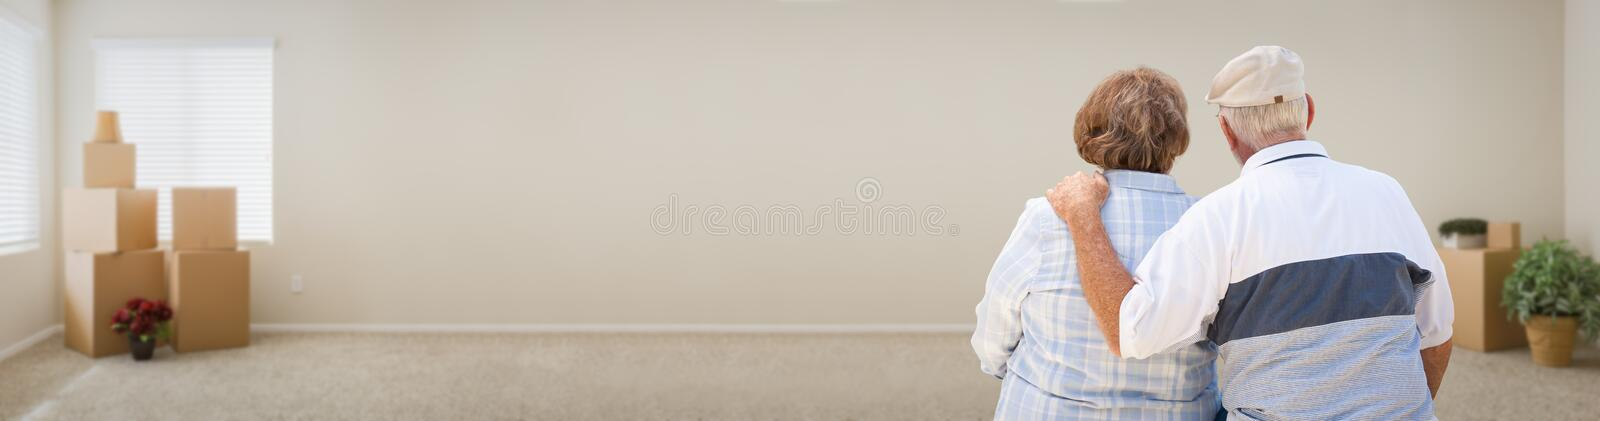 Loving Senior Couple Looking Inside Room with Boxes Banner. royalty free stock photography